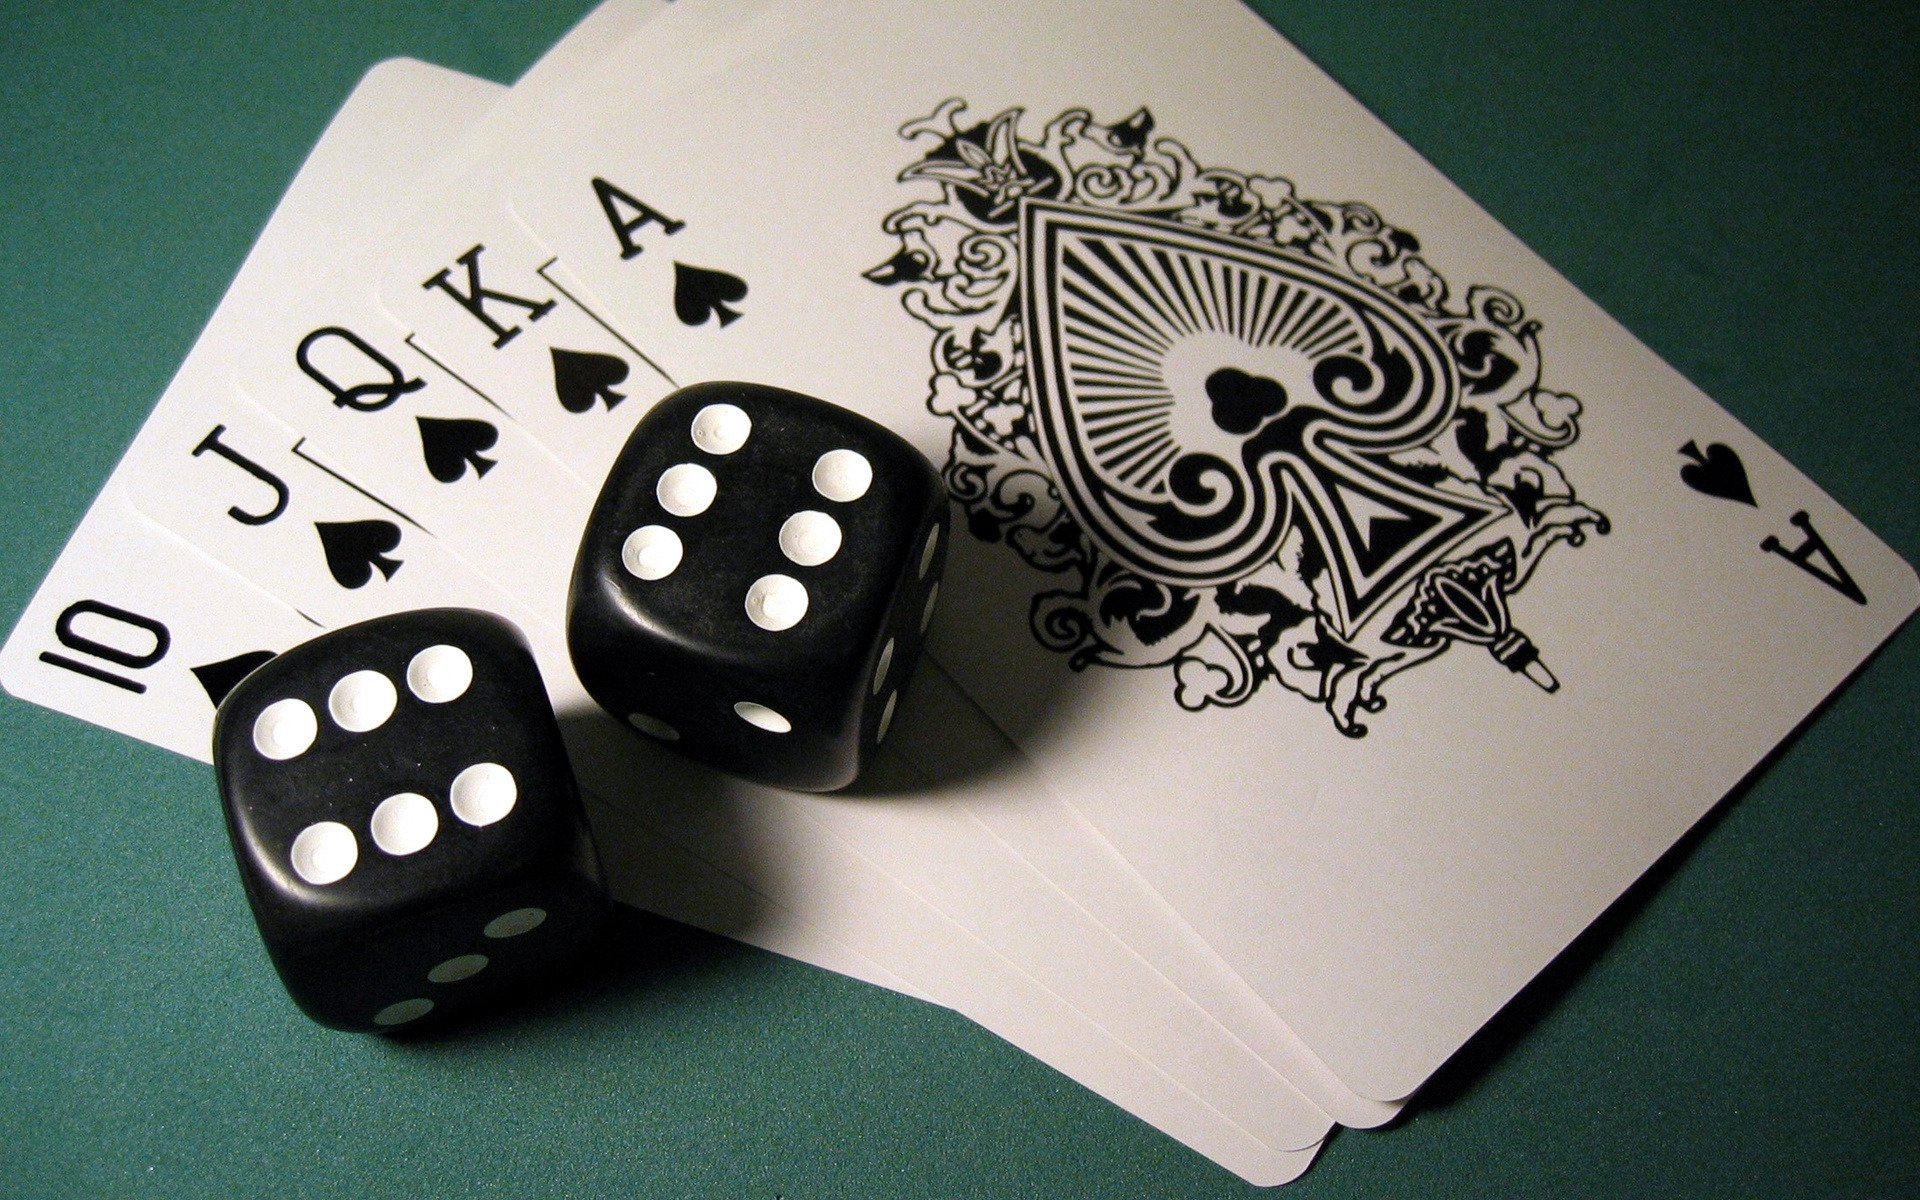 Read here if you want to become an amazing Omaha poker player